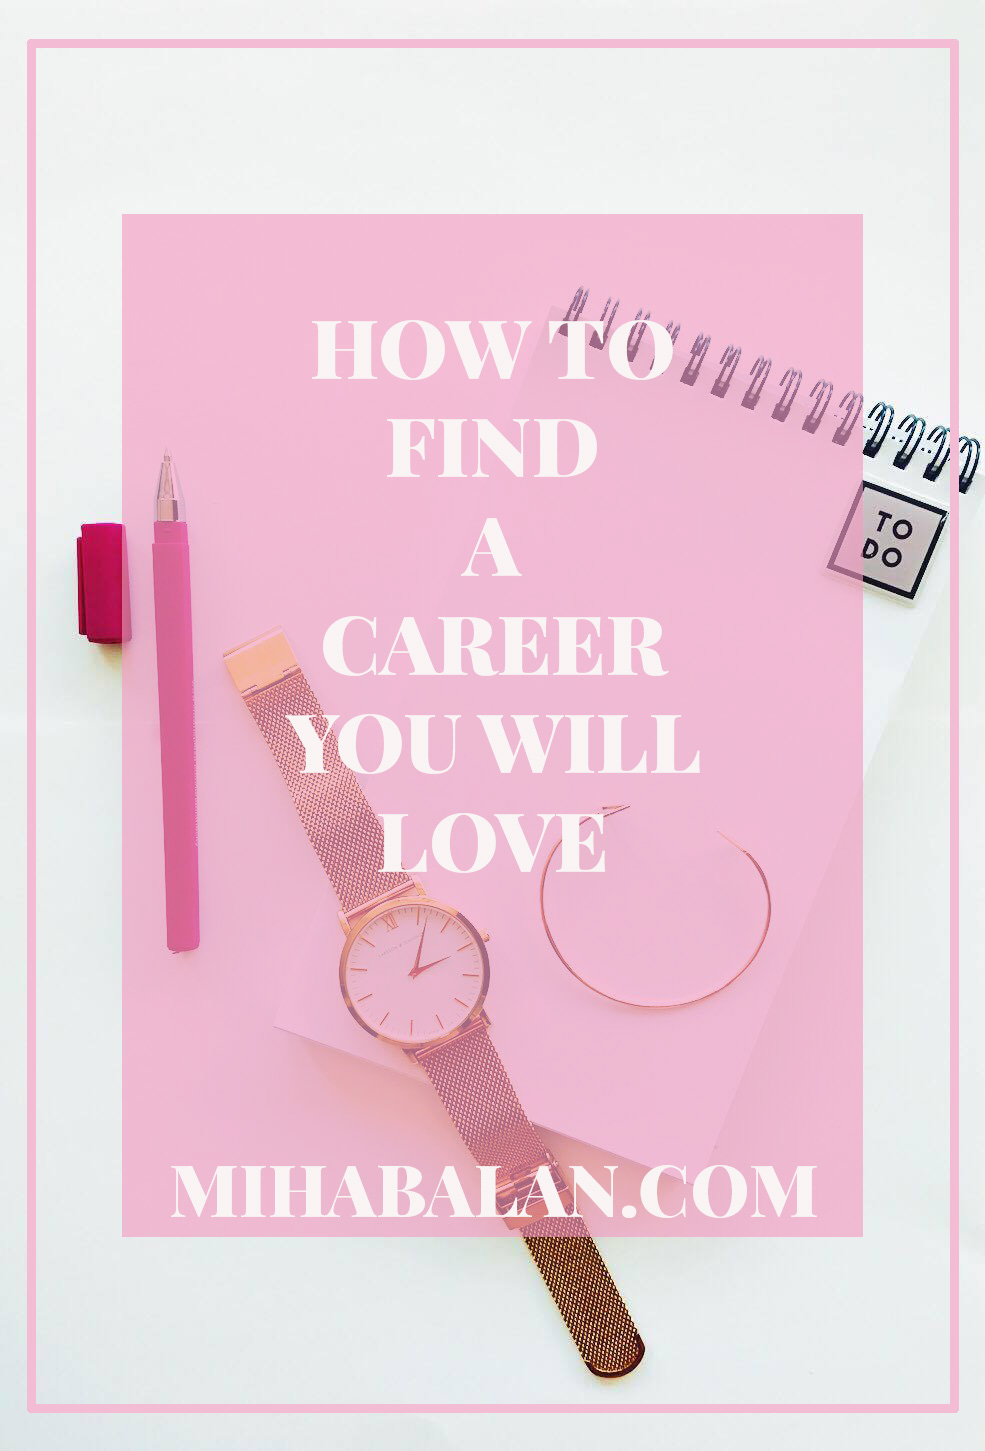 How do you find the career path that you will love?